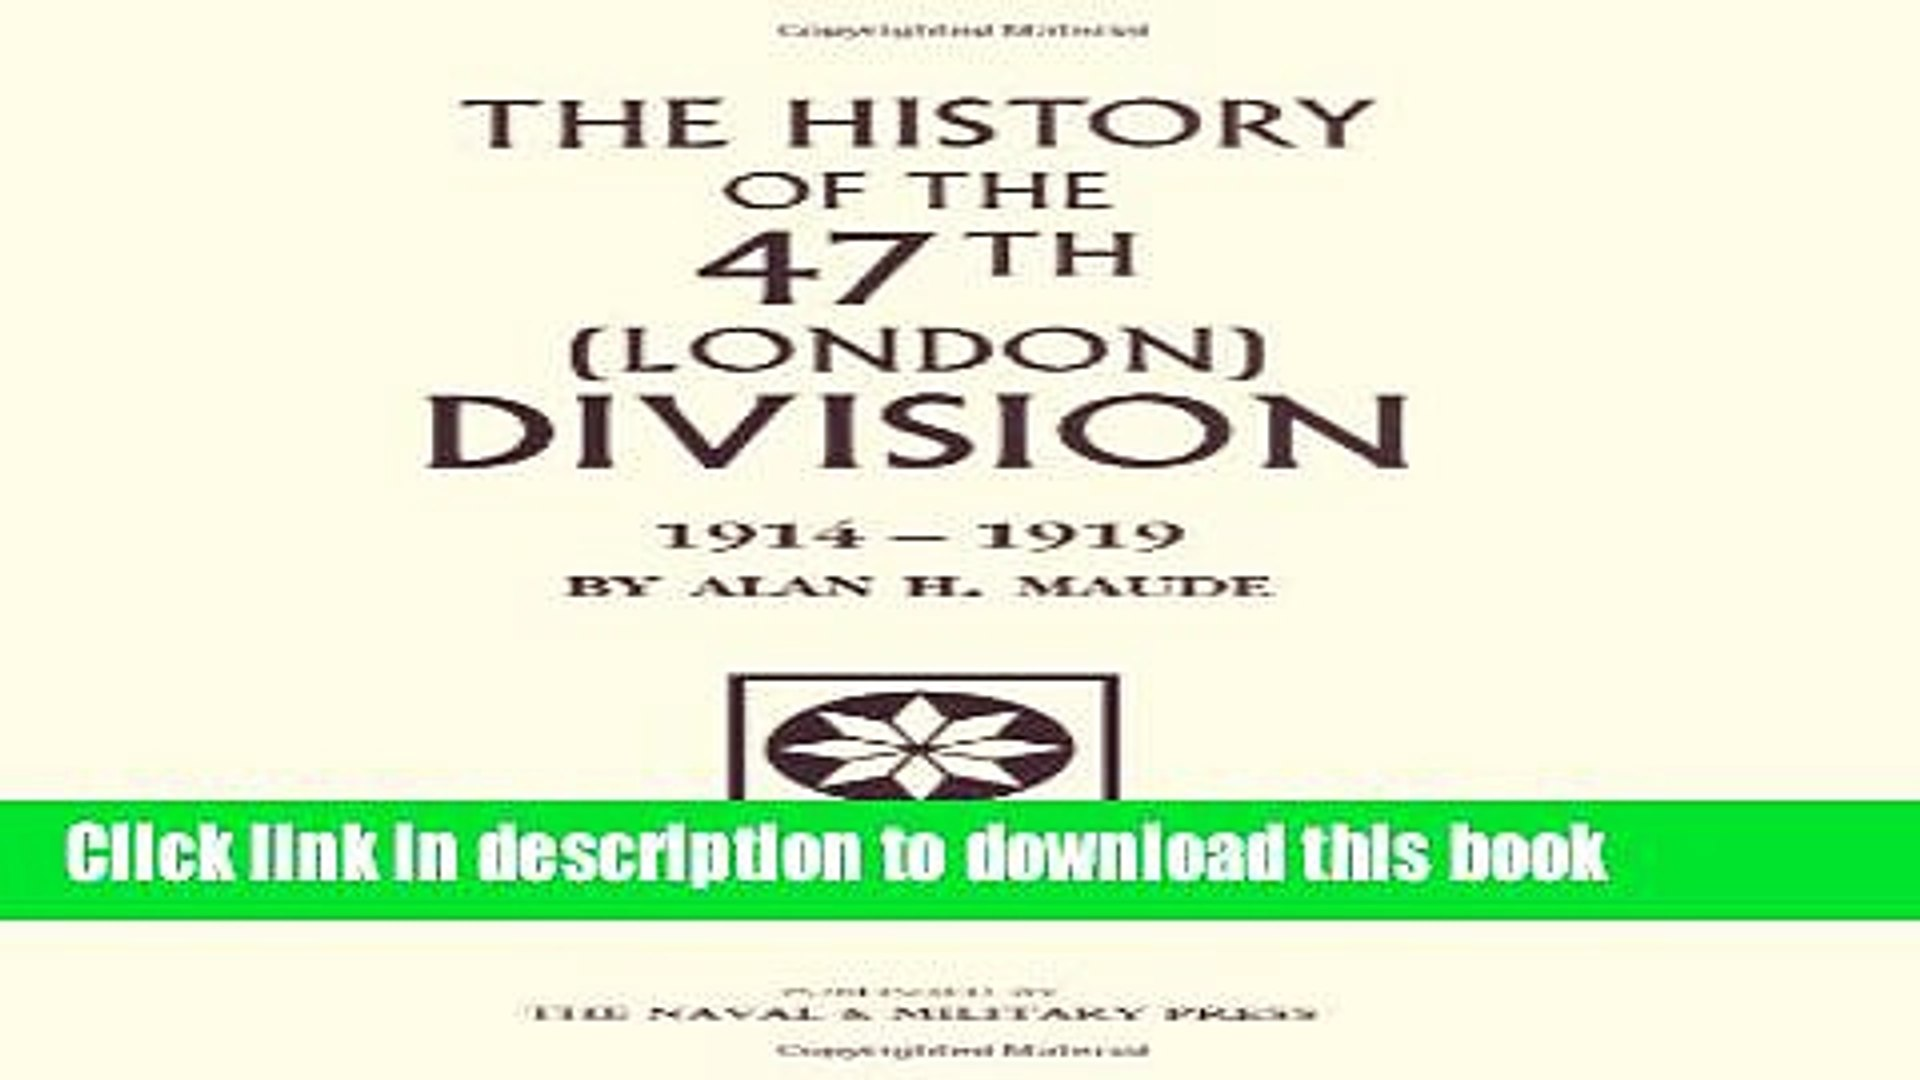 Read The History Of The 47Th (London) Division 1914-1919  PDF Online